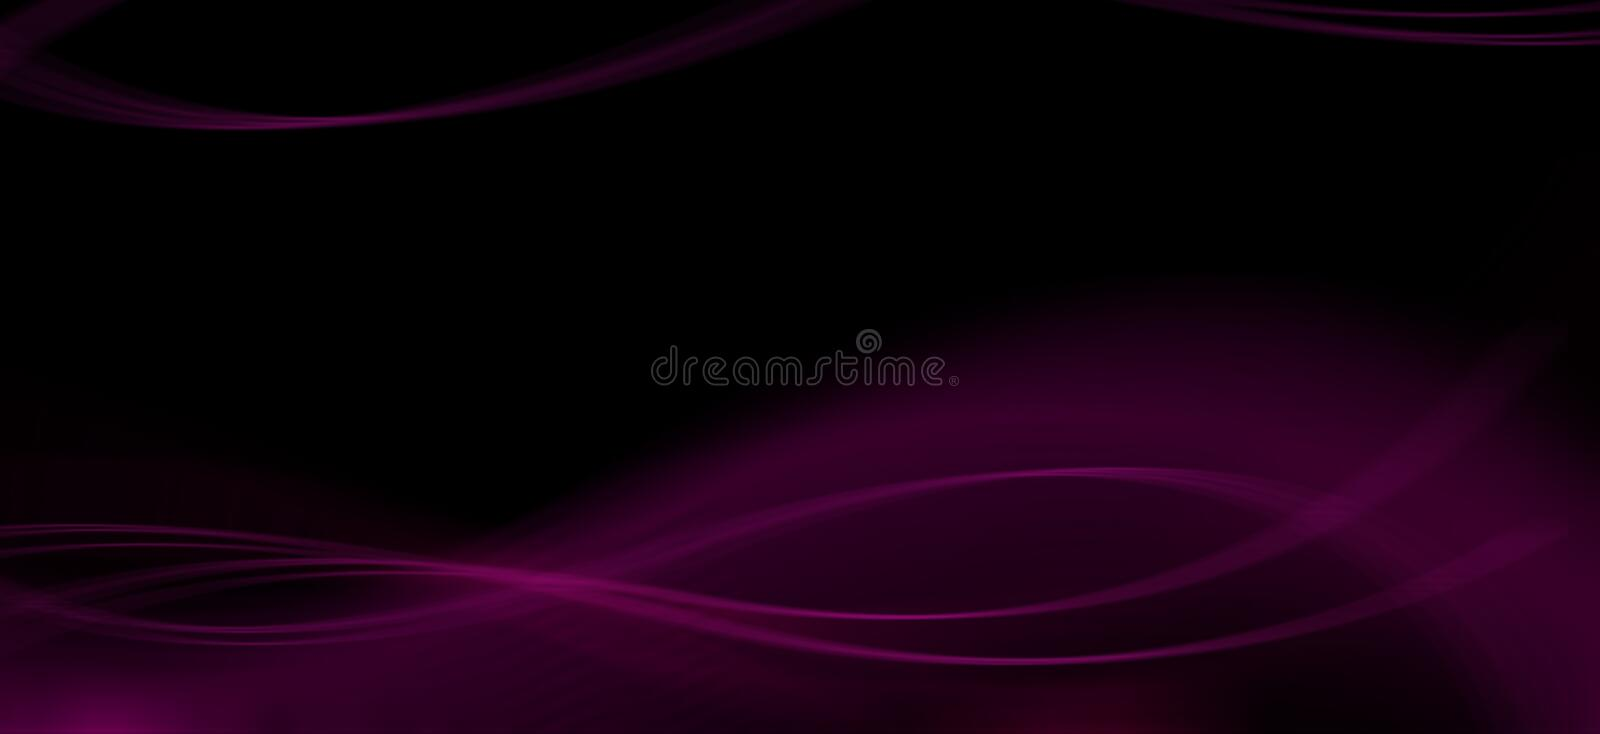 Abstract black background with pink waves. Pink blur lines. Decorative background royalty free illustration